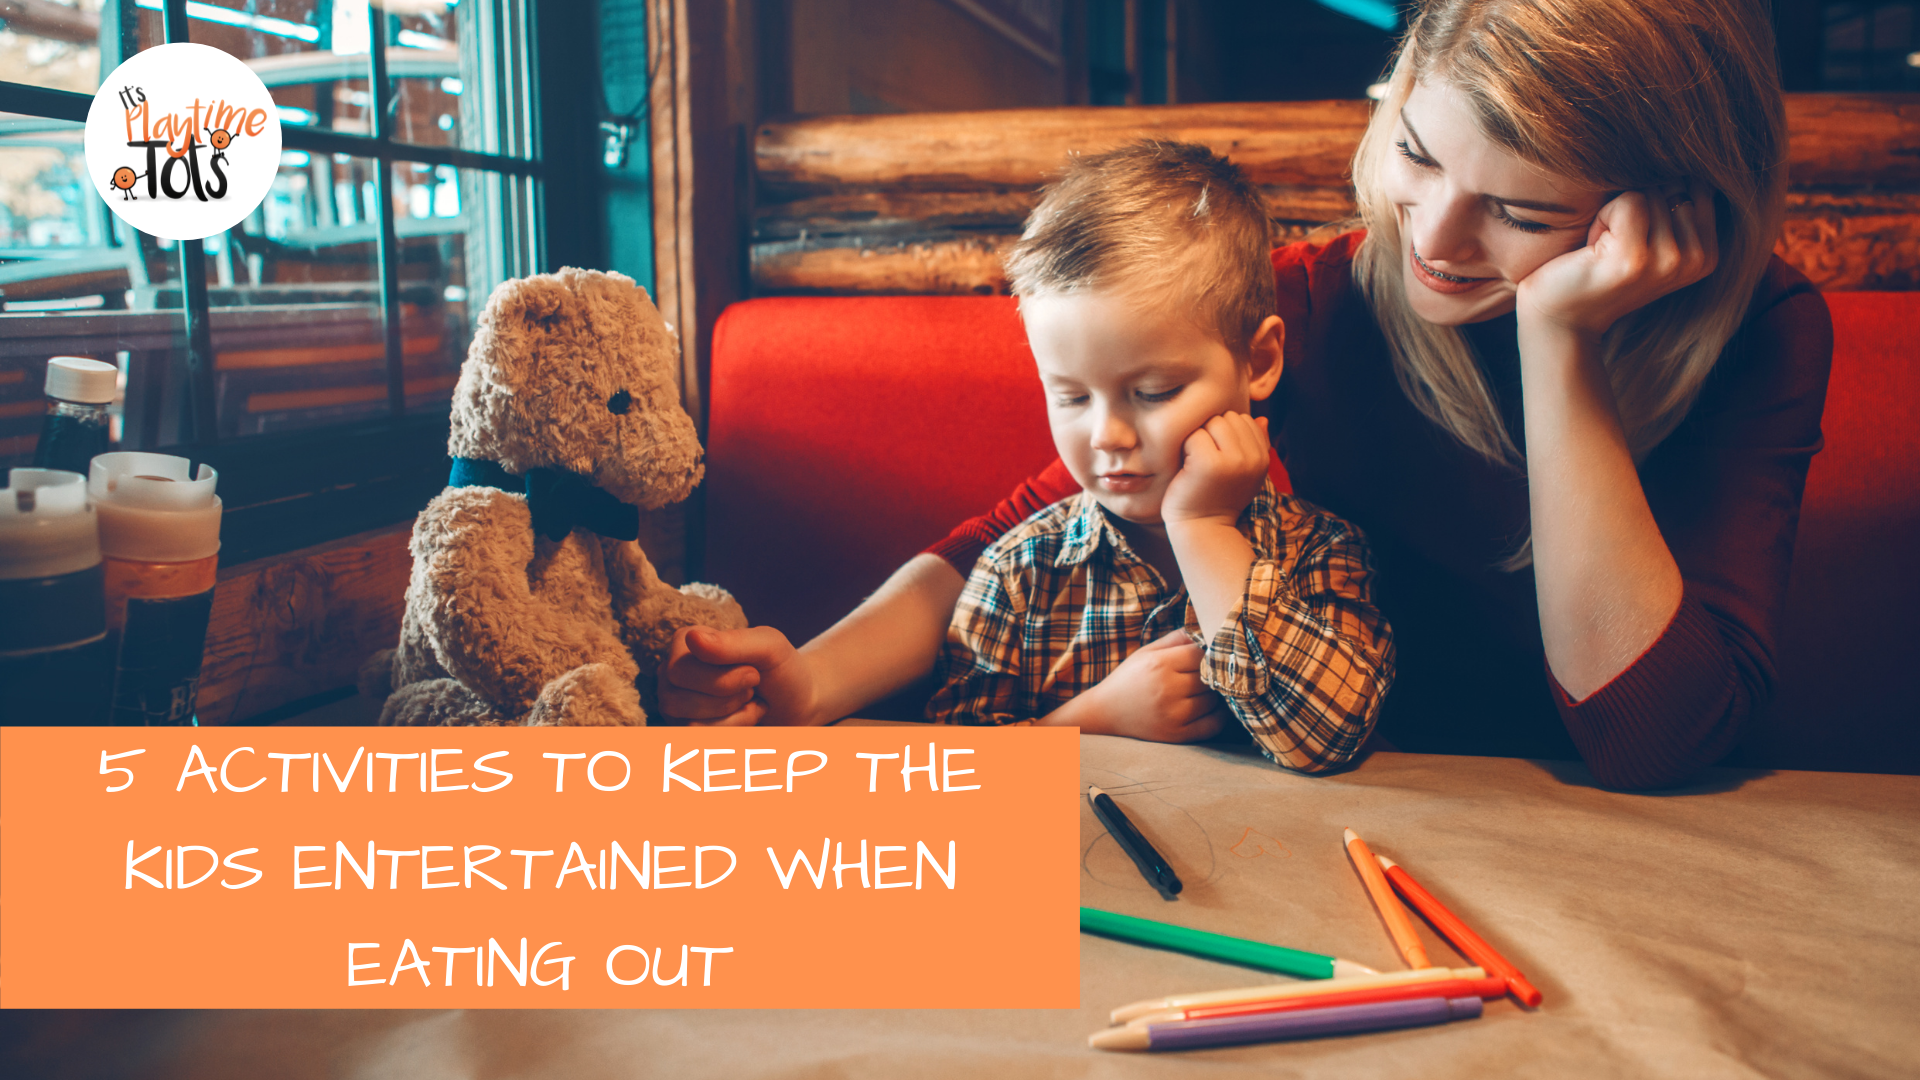 5 Activities To Keep The Kids Entertained When Eating Out